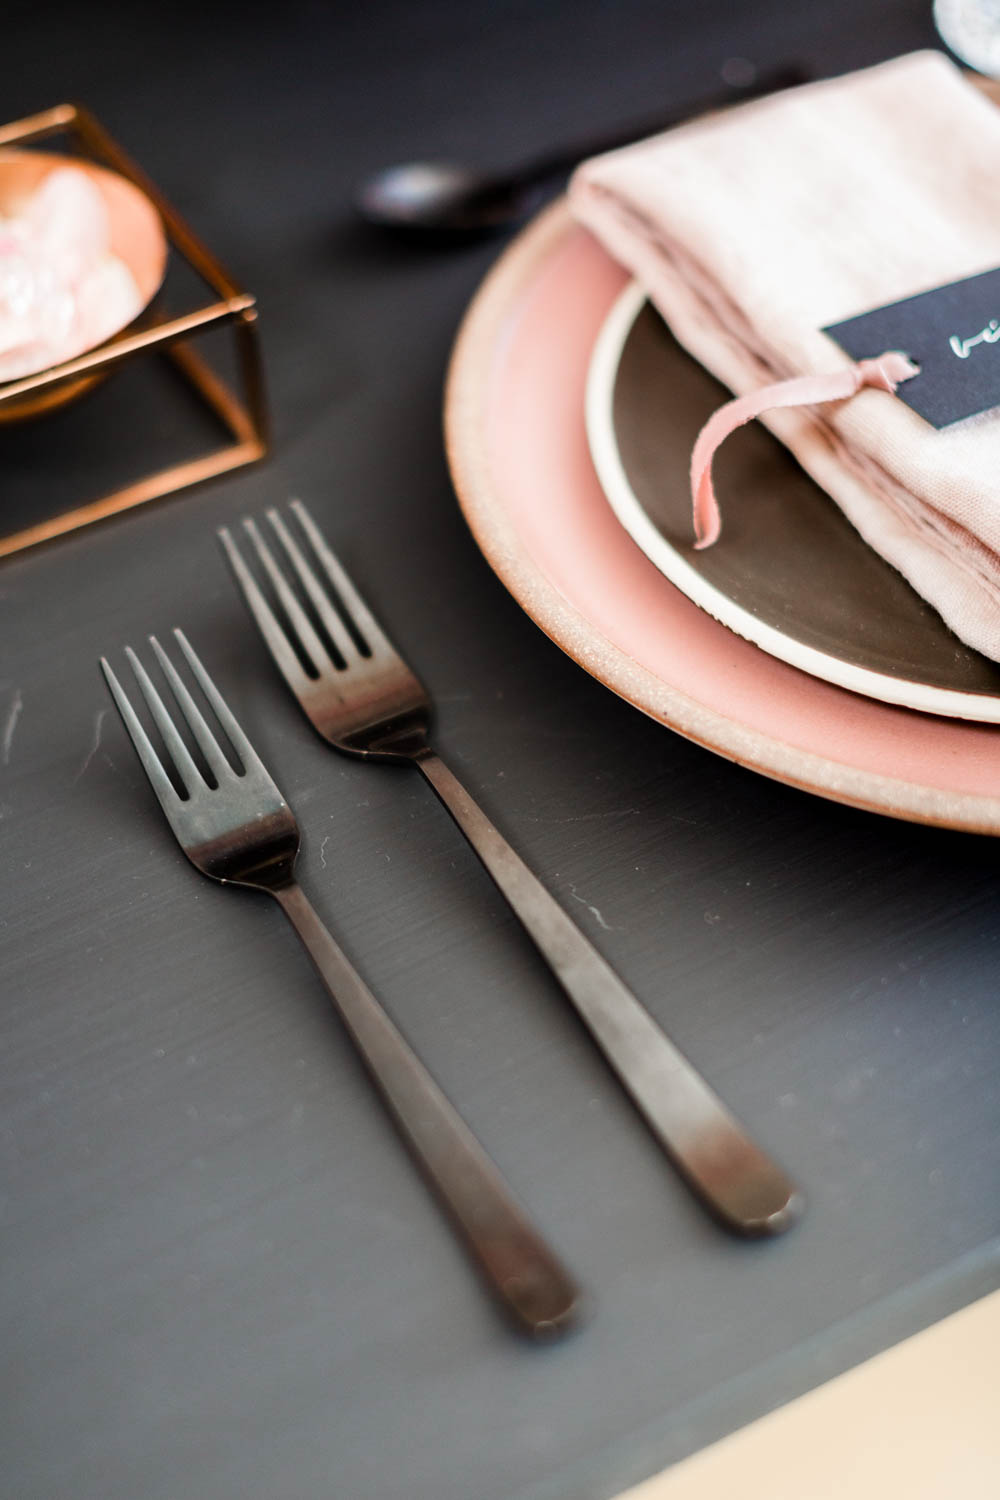 Black flatware on a black table, Black pink and gold wedding inspiration or rehearsal dinner inspiration, Cavin Elizabeth and Amorology